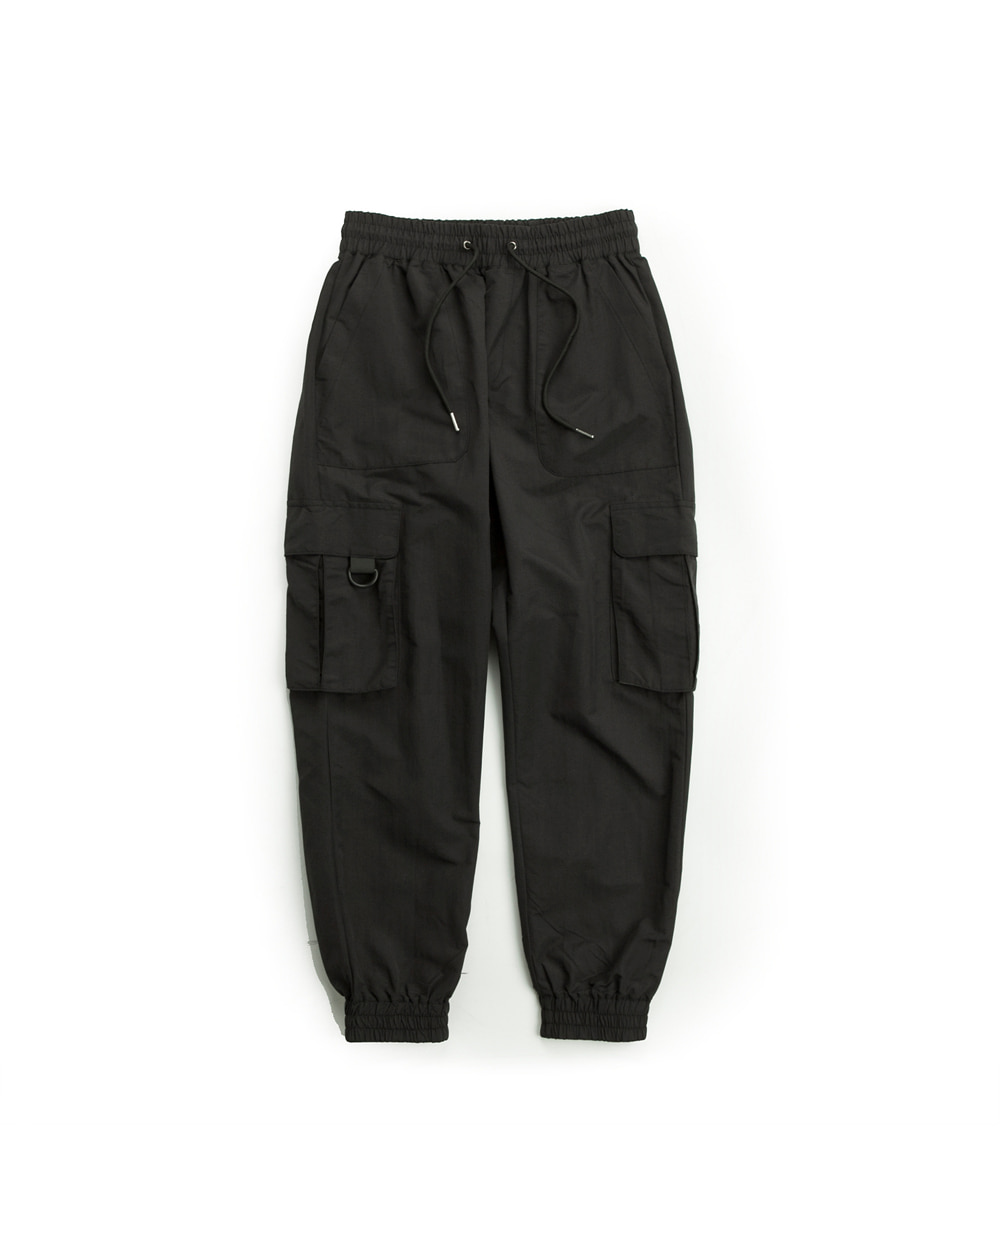 WATERPROOF JOGGER PANTS BLACK